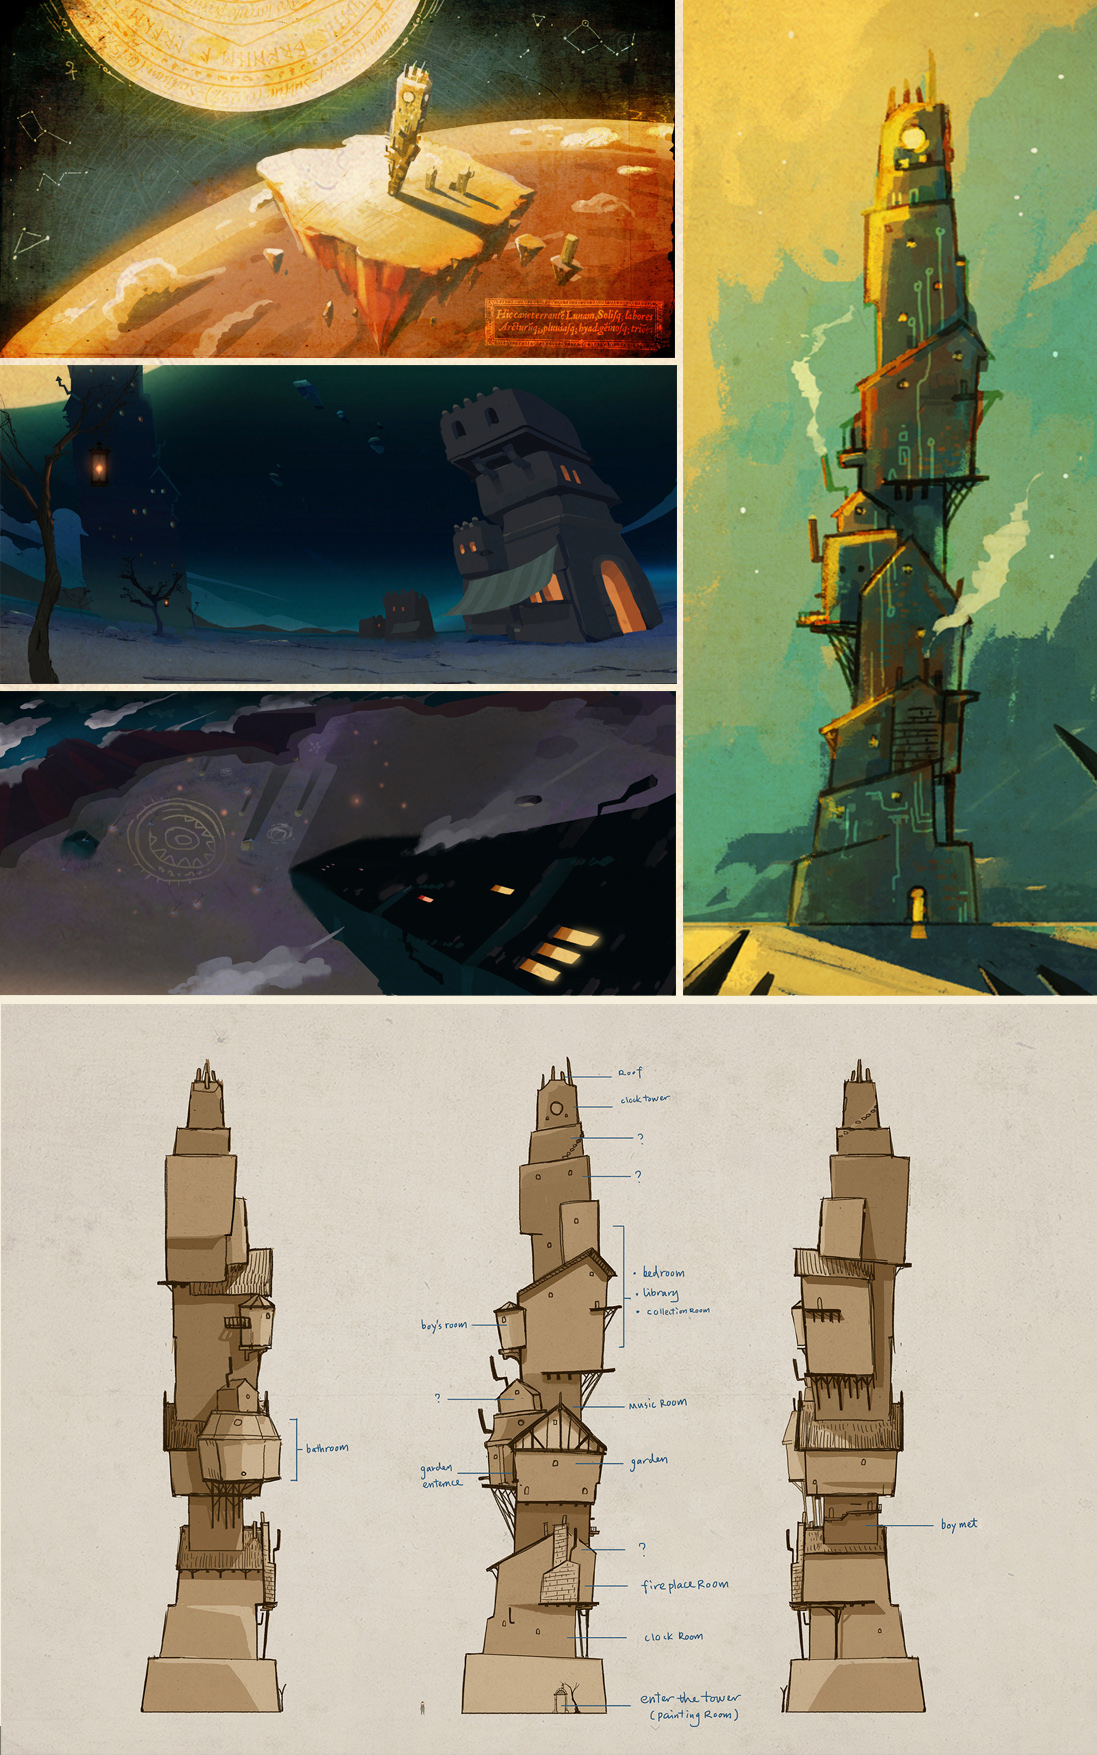 We'd like to thank Concept artist Tang, who is helping the project voluntarily .